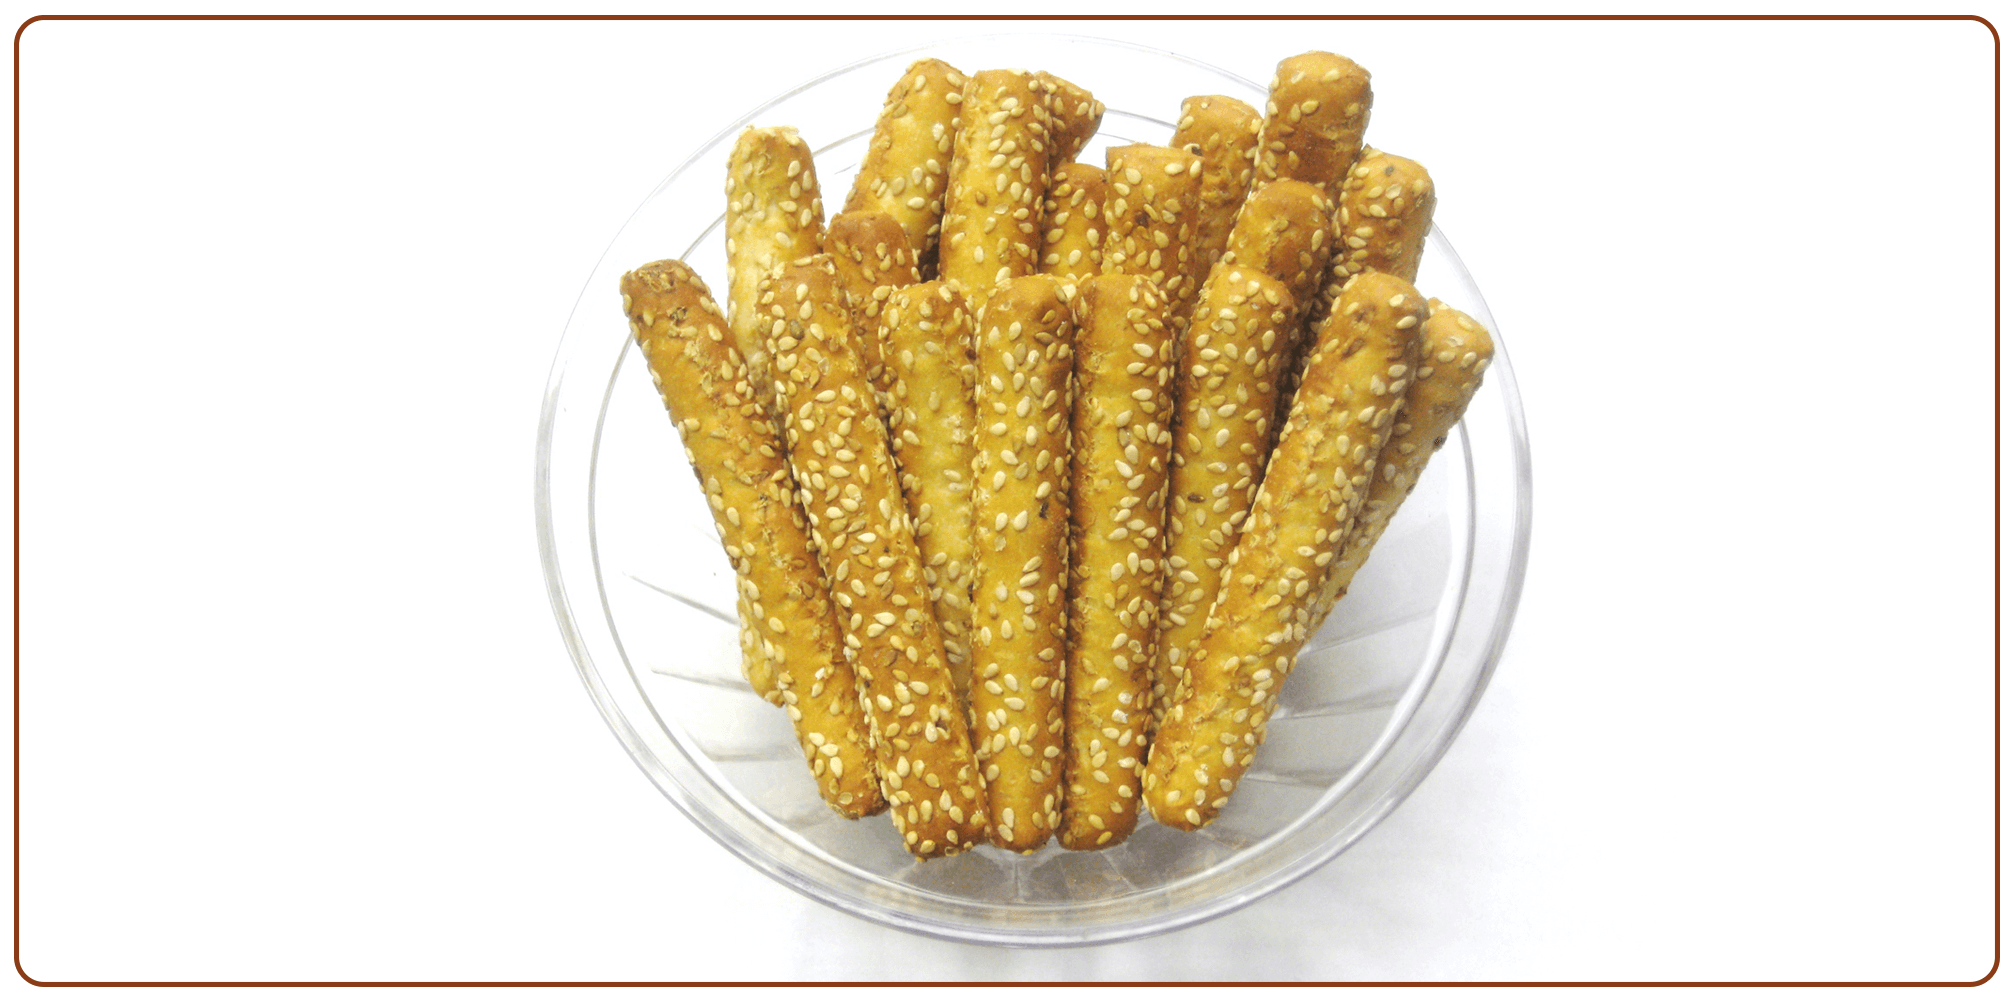 09-sesame-on-plate.png